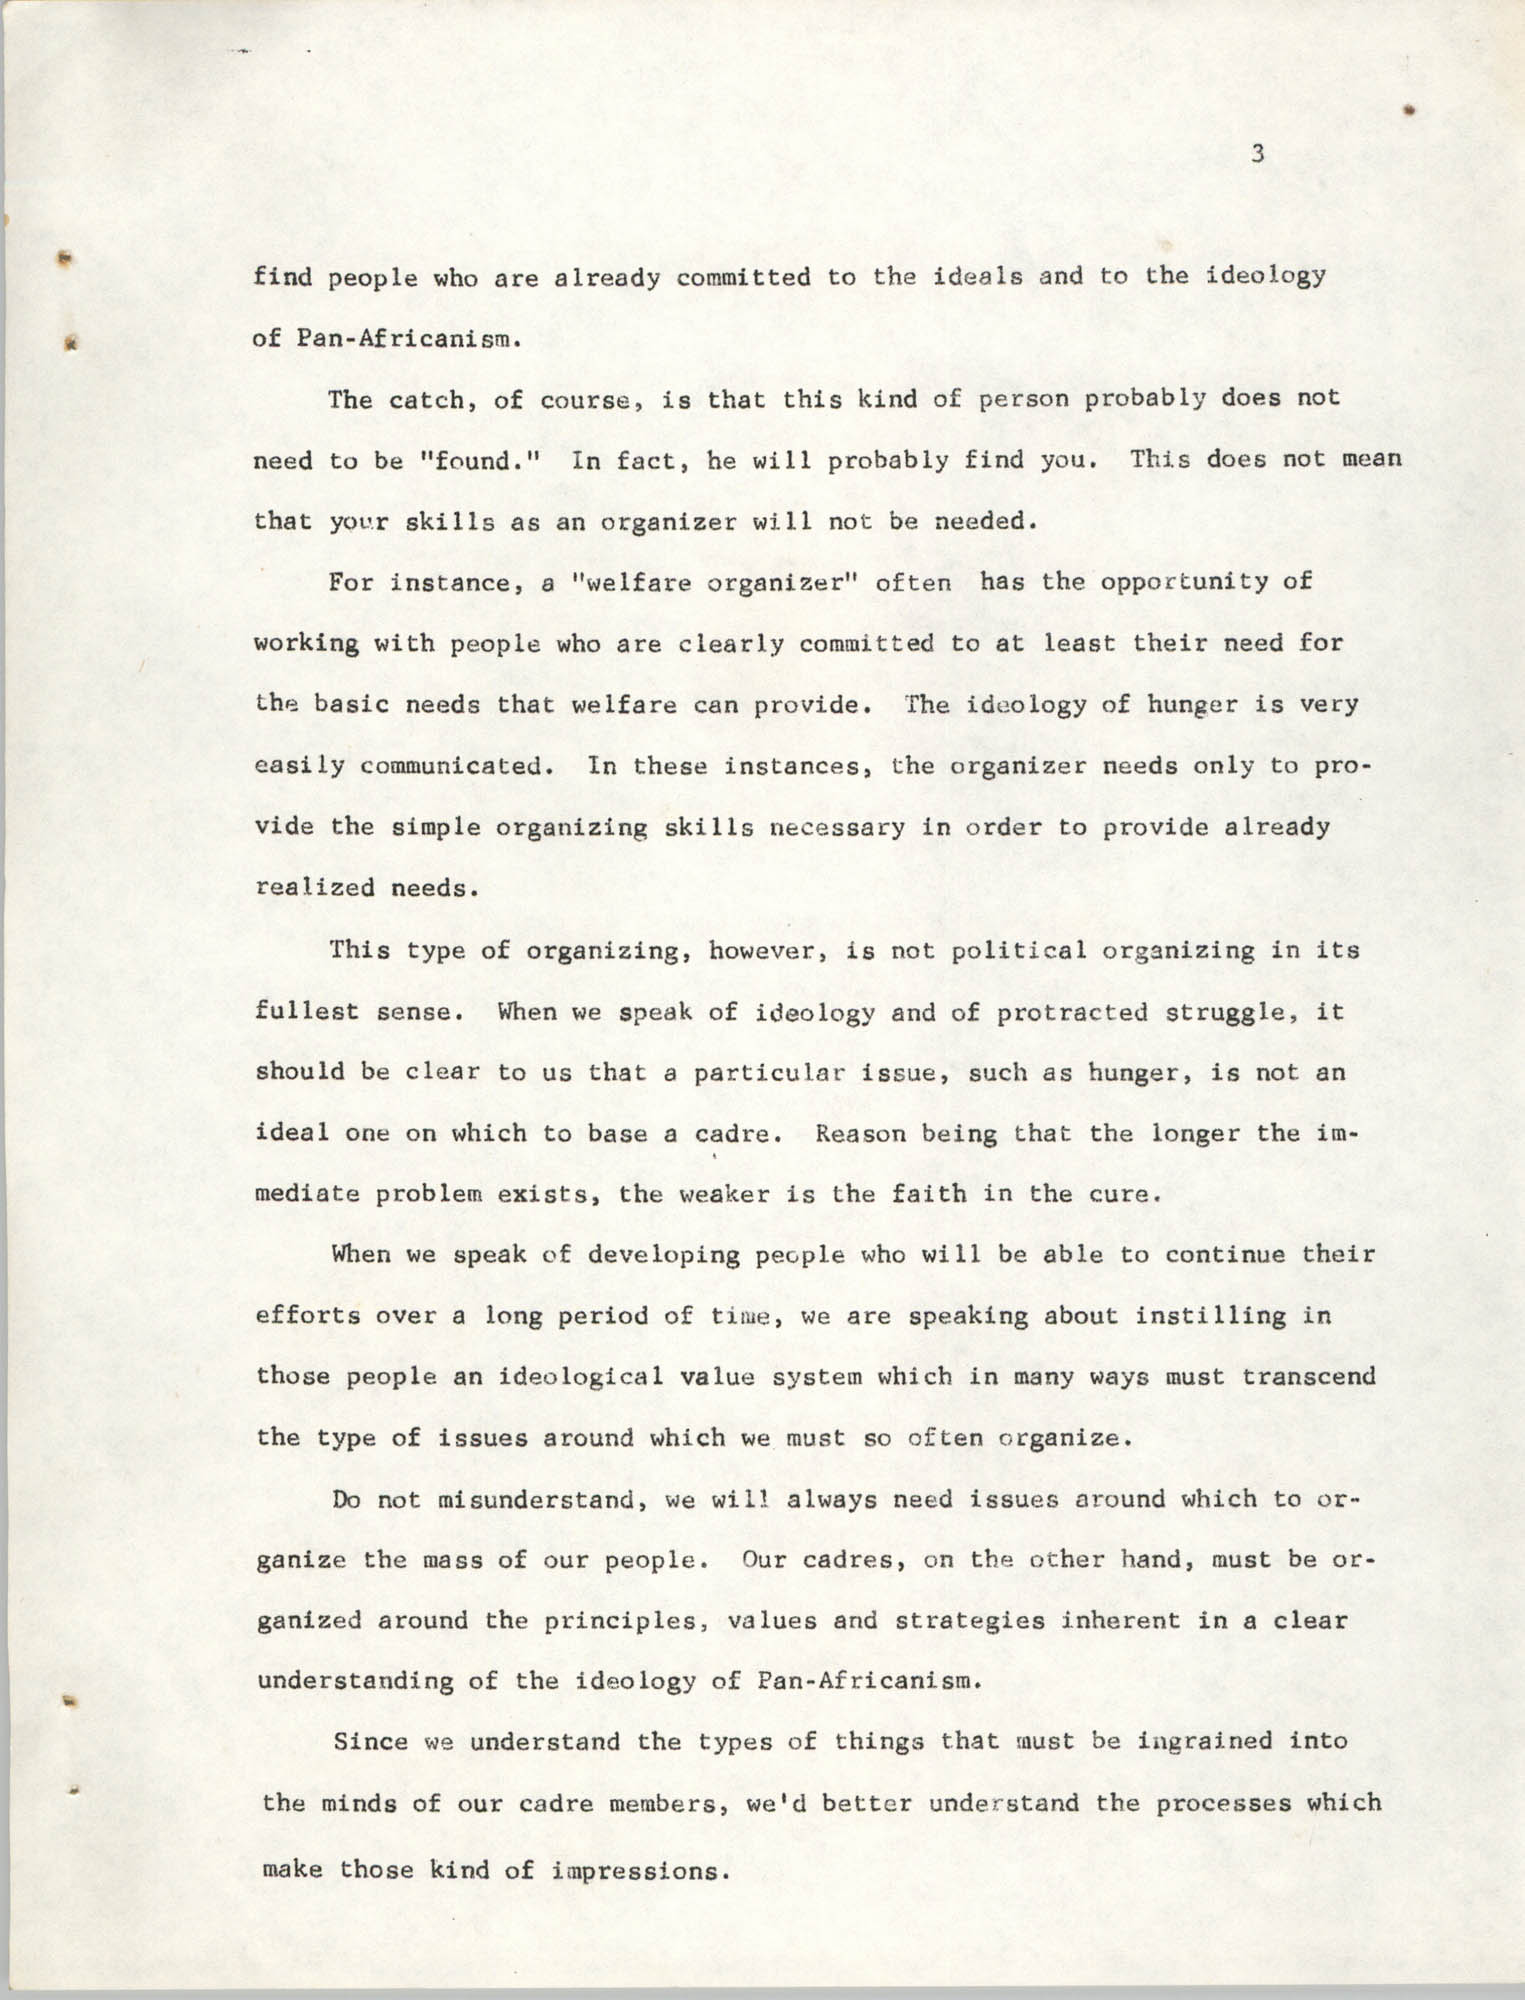 Developing Political Cadres, Page 3